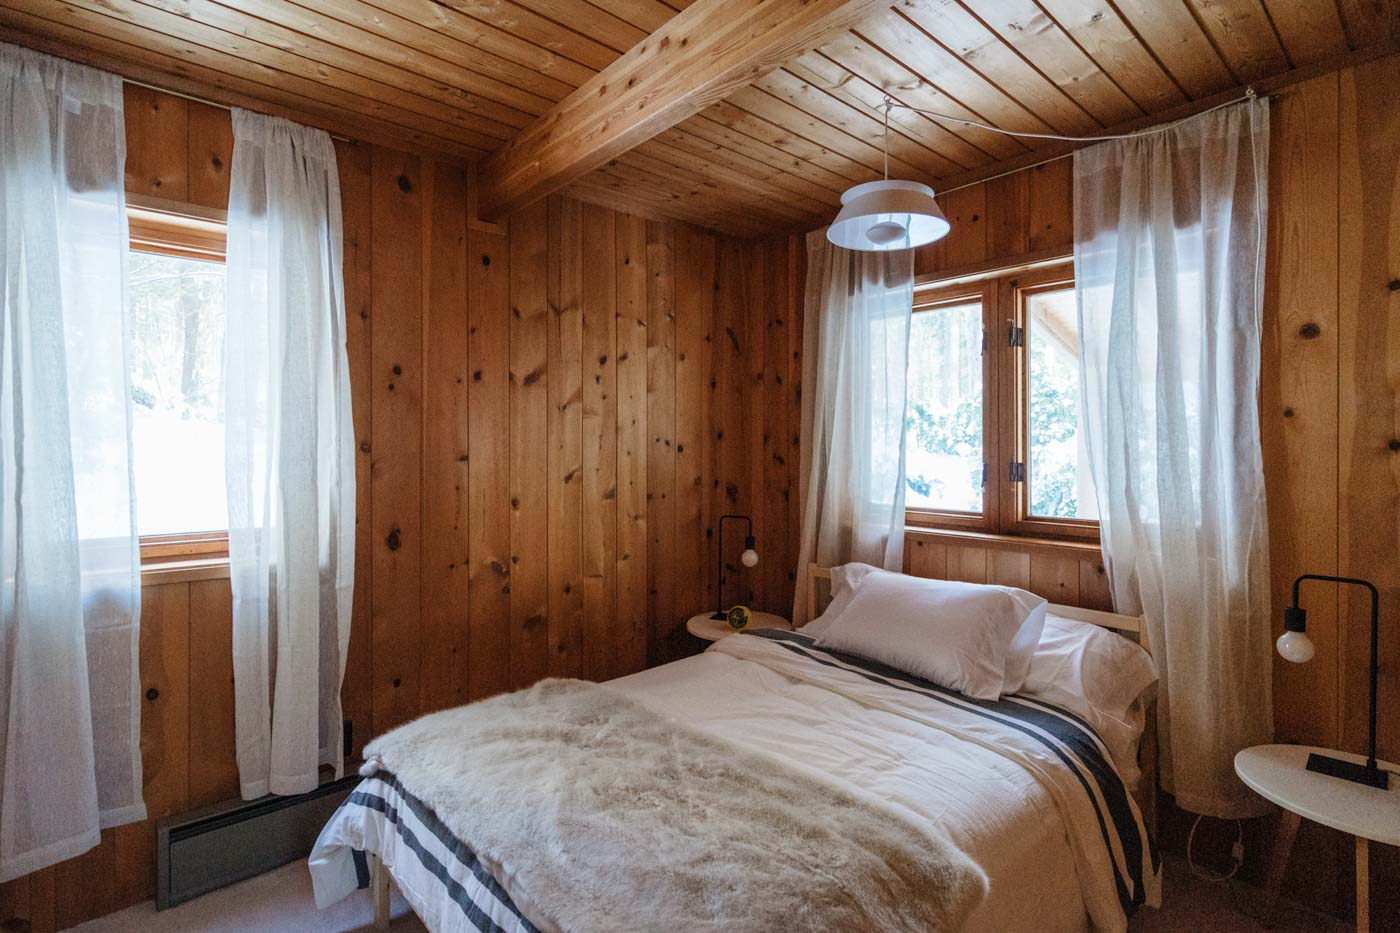 CabinGoals-WardsboroVT-natural-light-photography-studio-lifestyle-photoshoot-location-editorial-commercial-photography-2.jpg